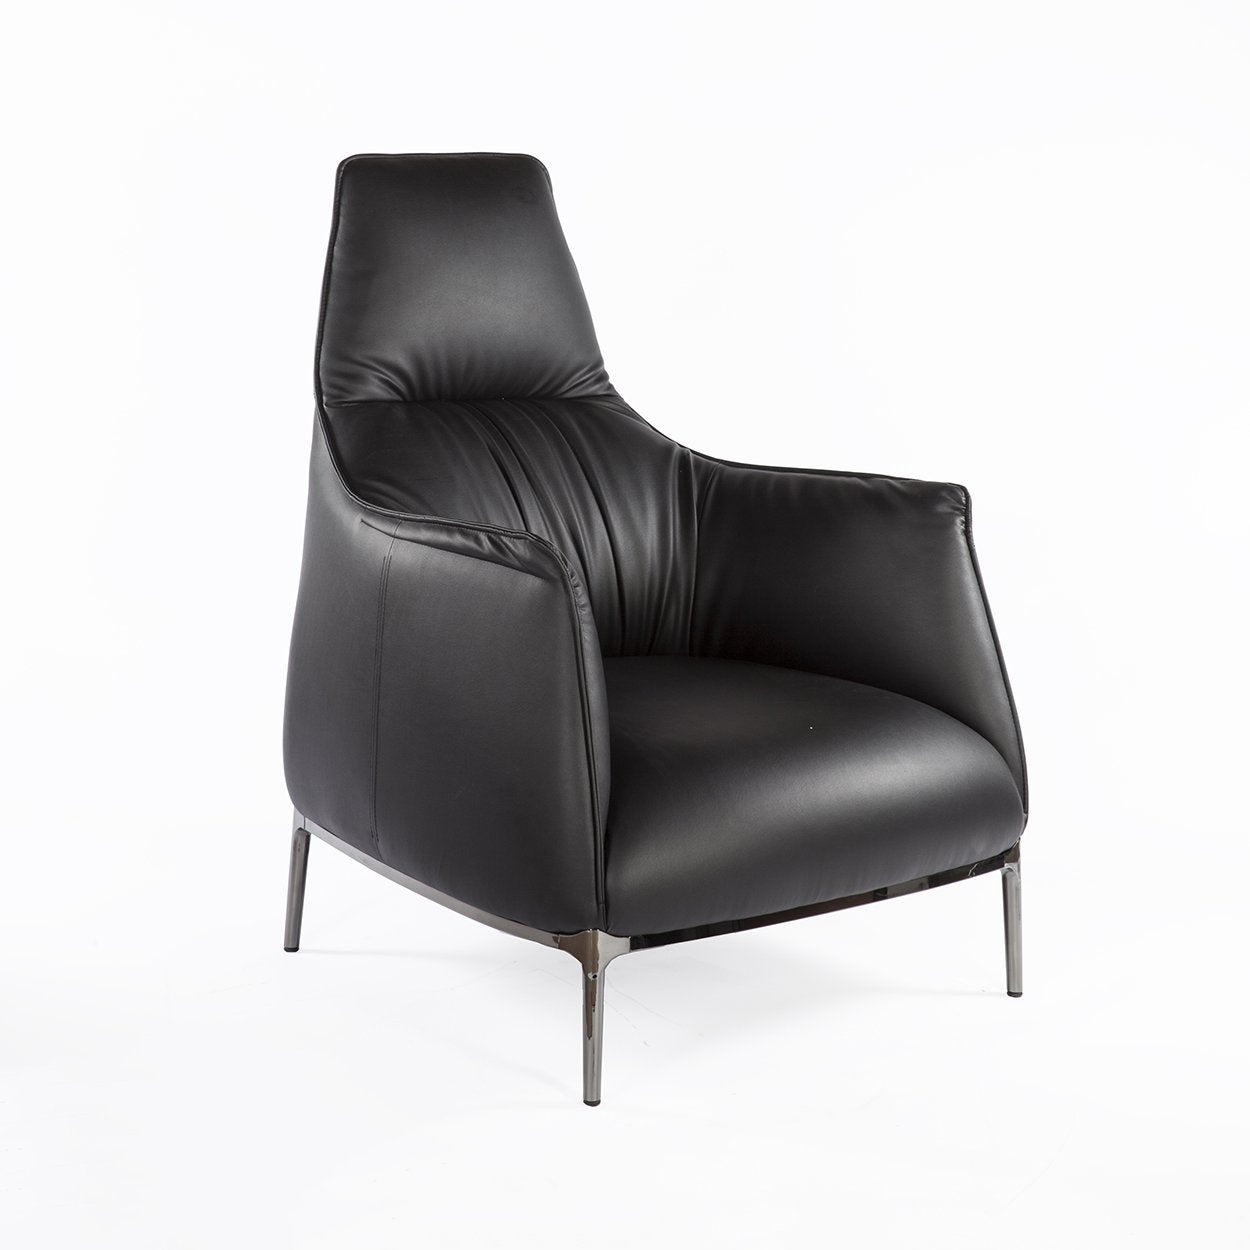 [FV064BLK] Babak High Back Lounge Chair SALE